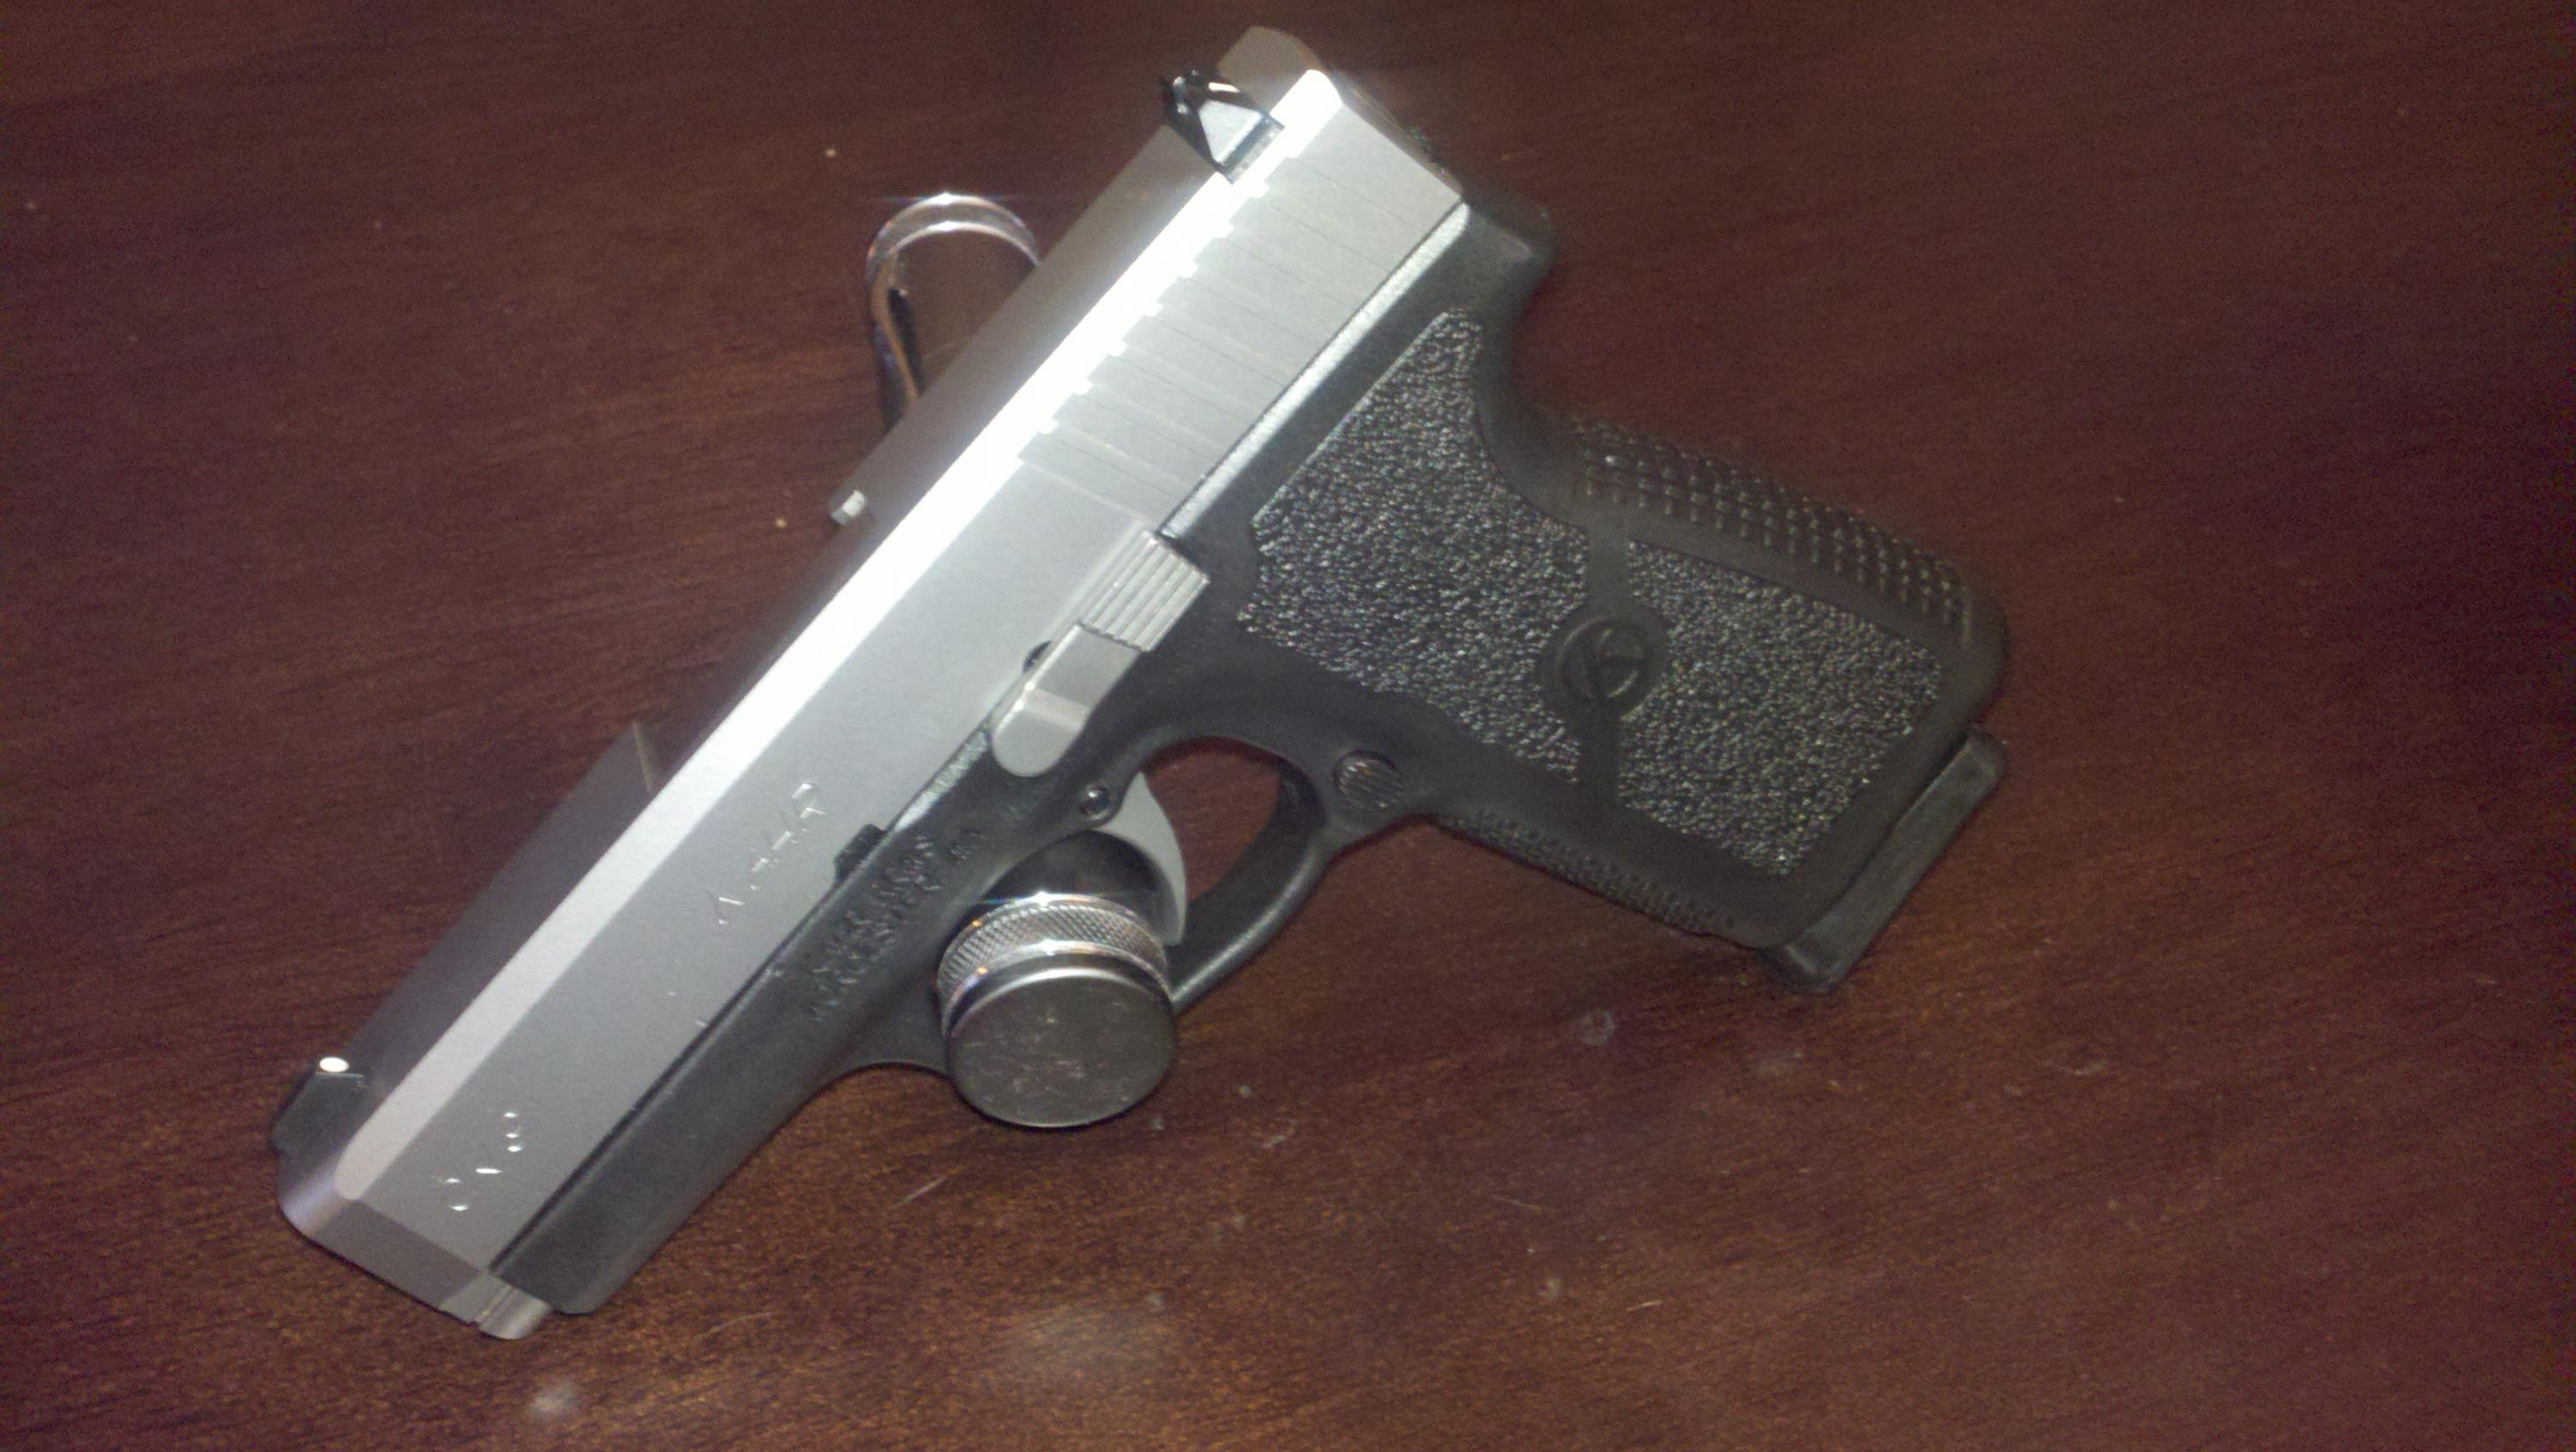 New handgun today....yay!-2012-03-13_16-14-26_880.jpg